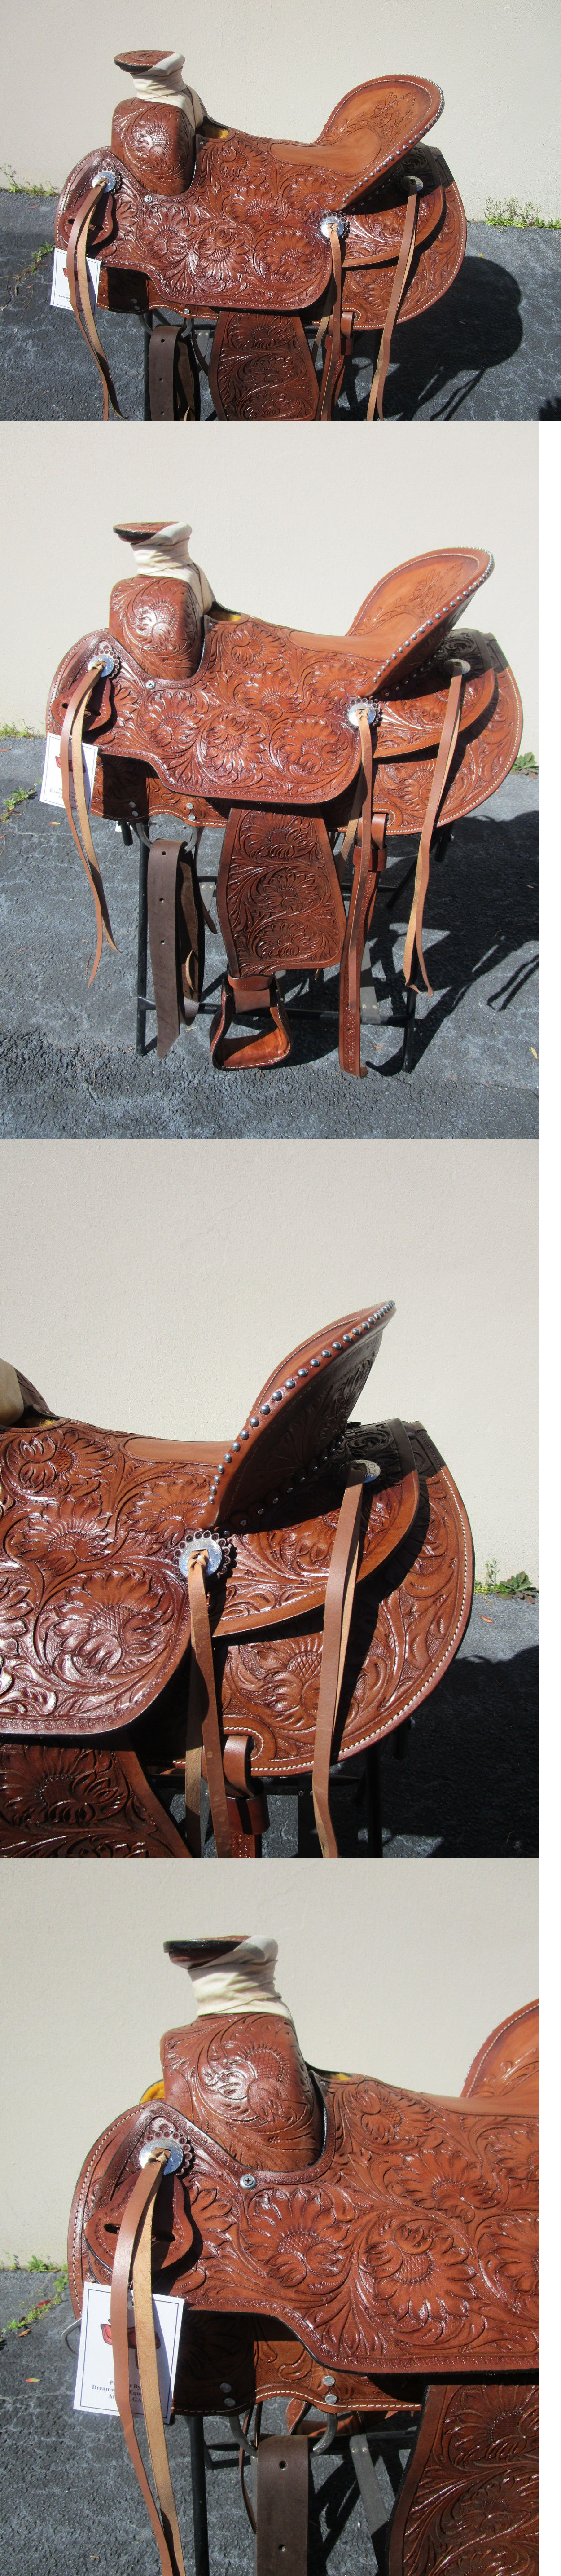 Saddles 47291: 17 Silver Stud Wade Roping Ranch Western Pleasure Tooled Leather Horse Saddle BUY IT NOW ONLY: $386.99